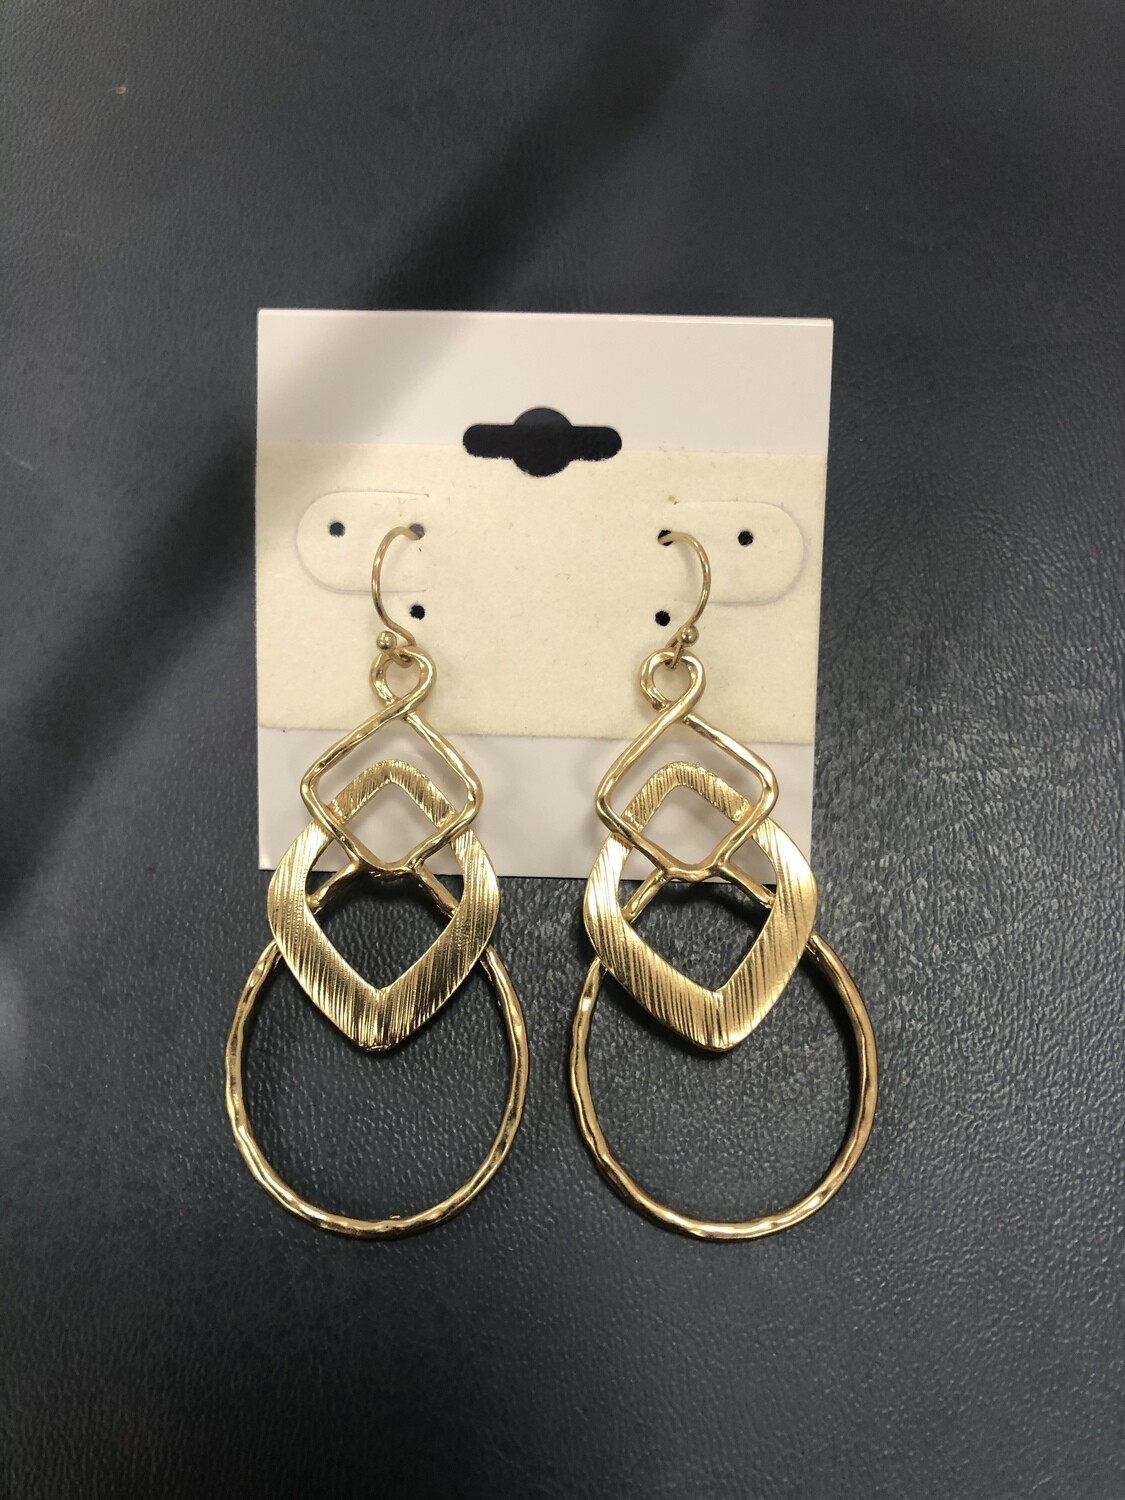 Gold Earrings Misshape